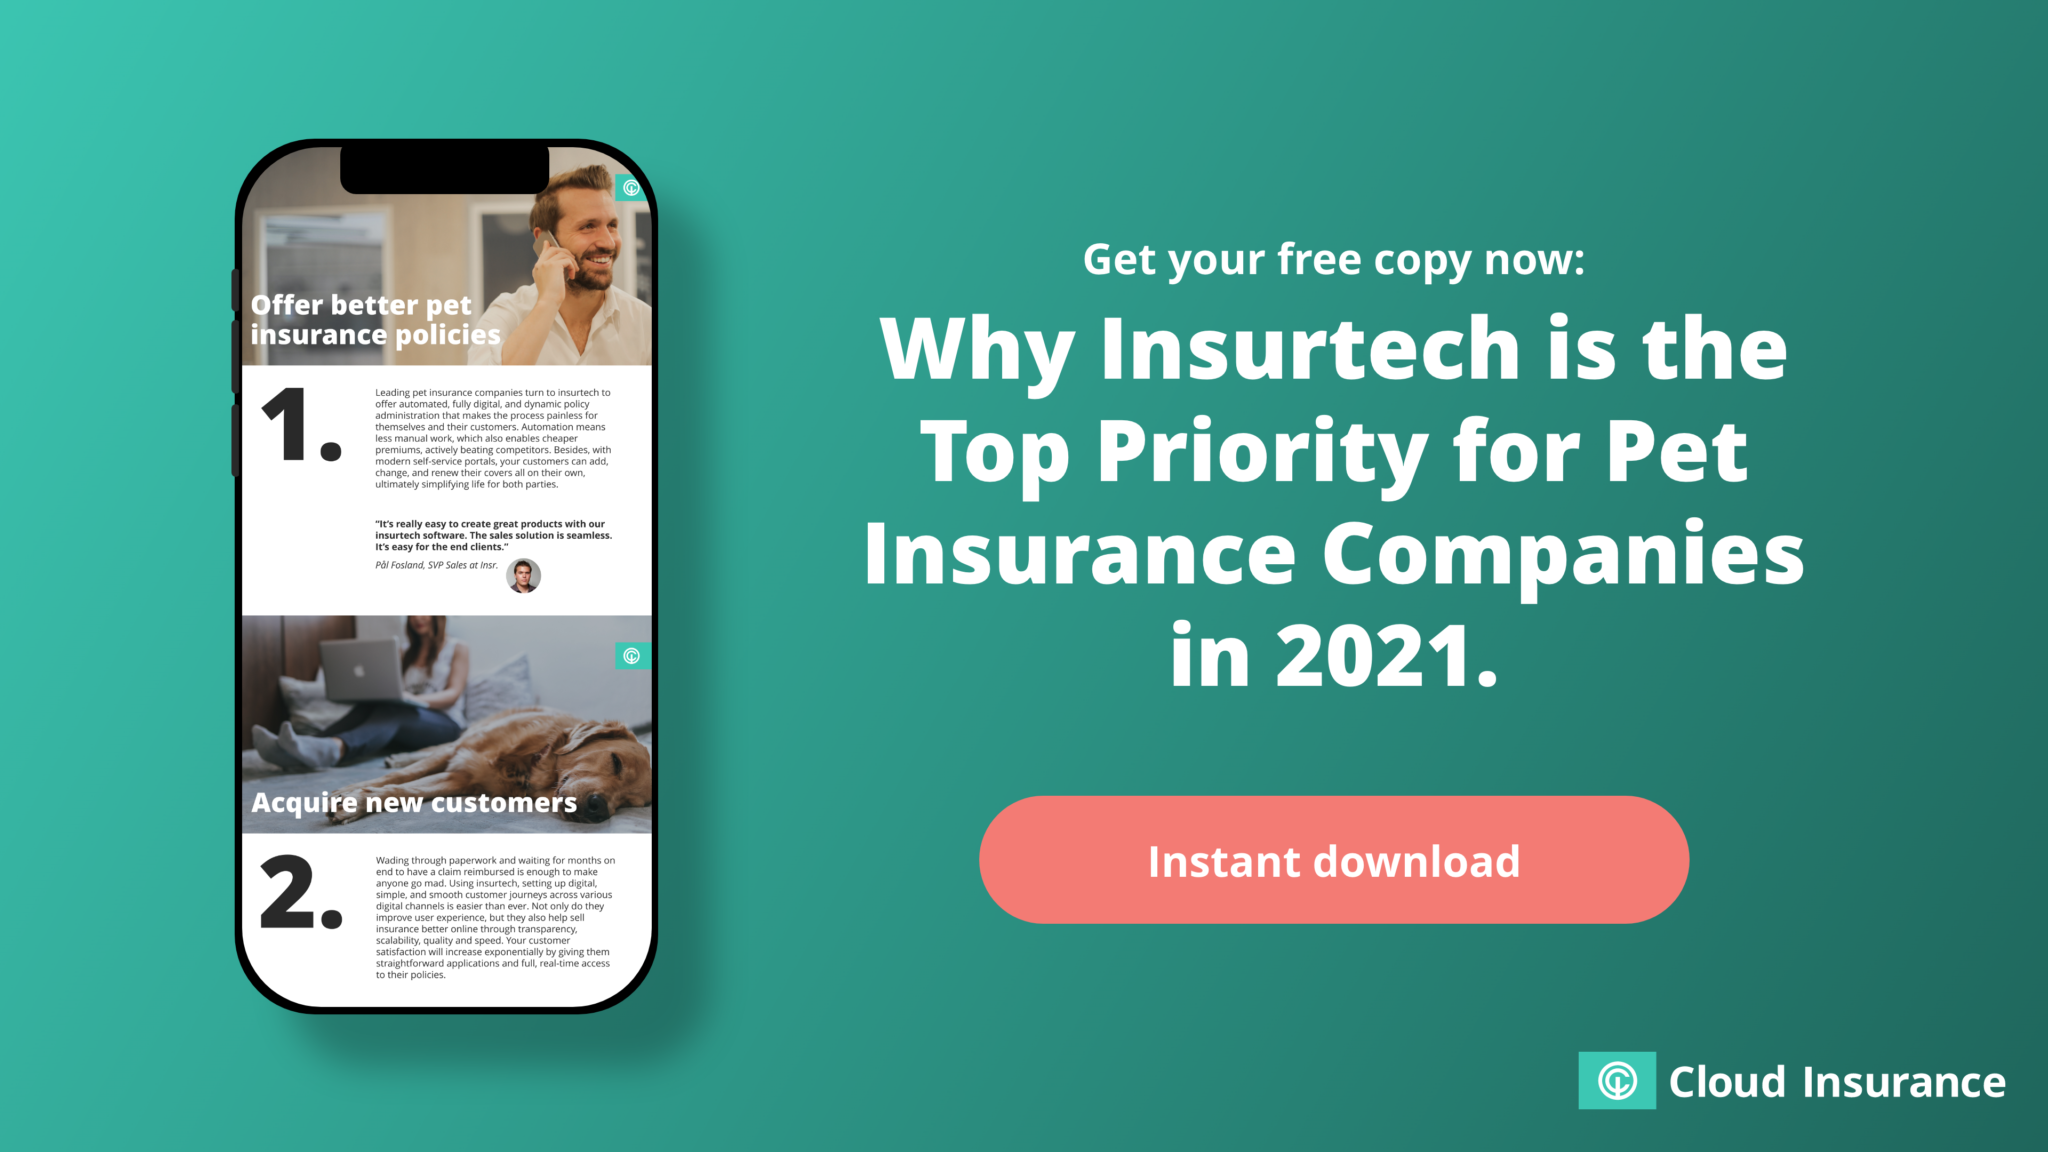 Why insurtech is the top priority for pet insurance companies in 2021n